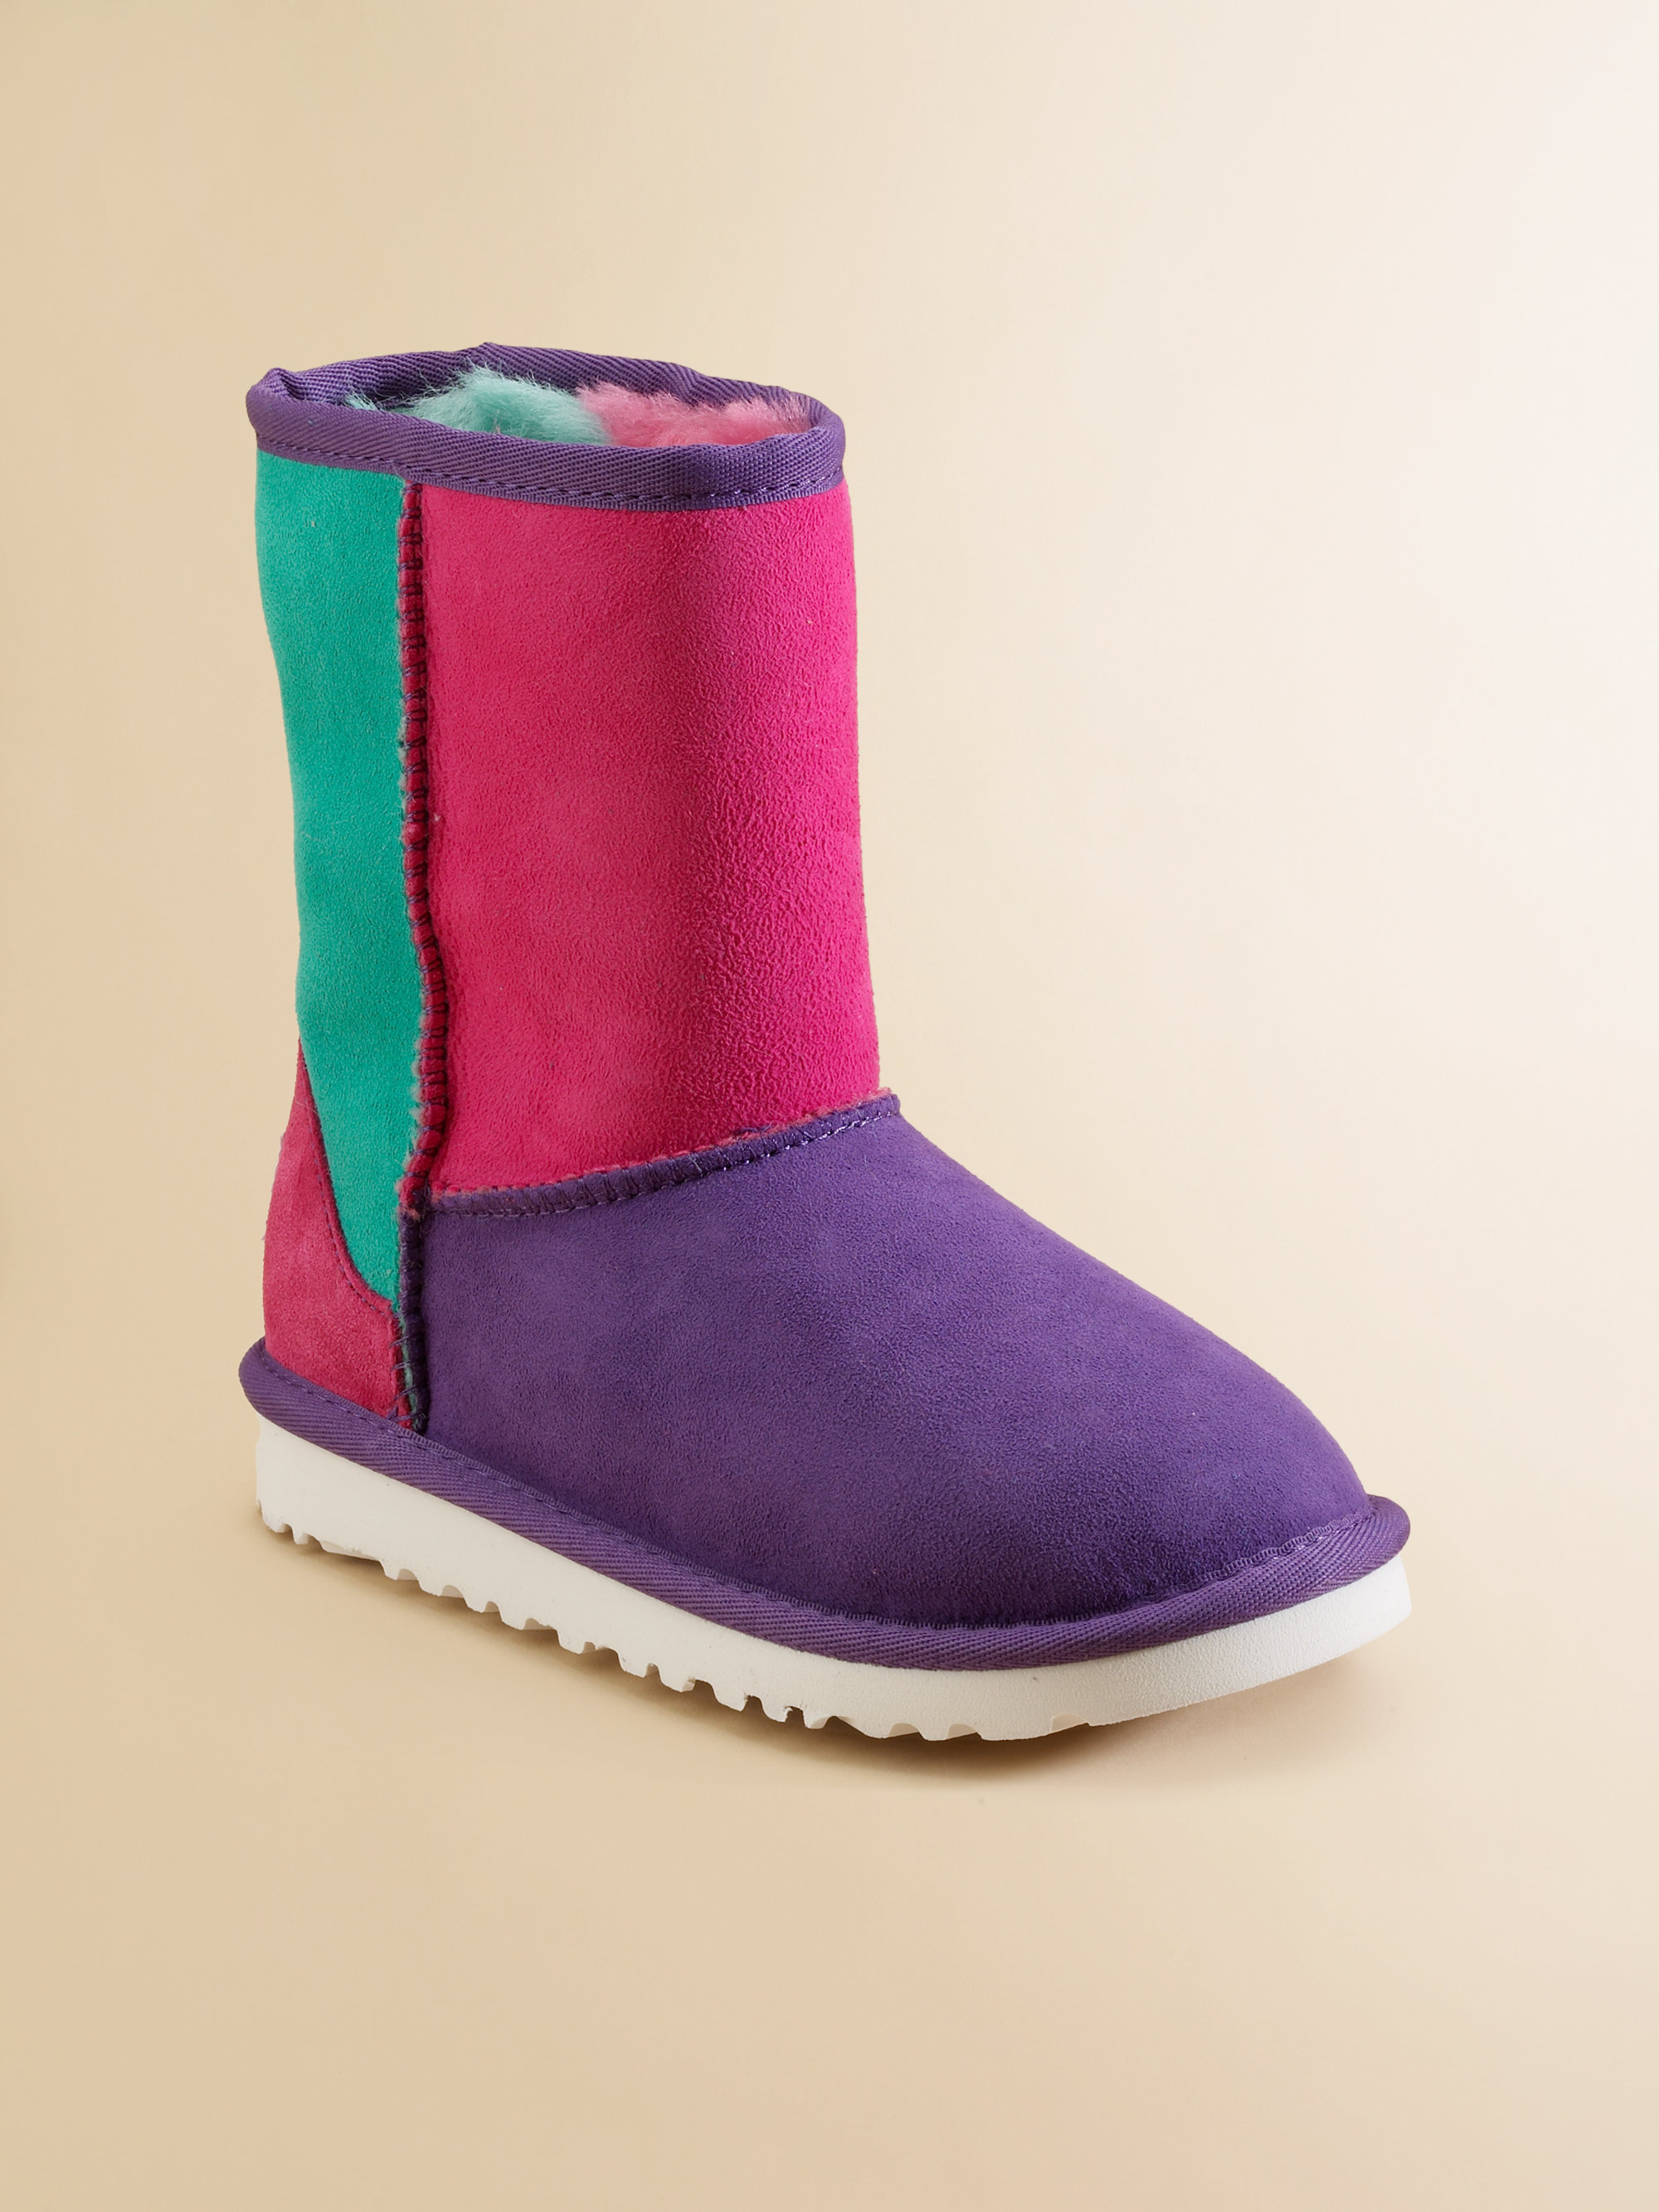 d830dfe9cbe Lyst - UGG Infants Toddlers Kids Patchwork Celestial Boots in Purple